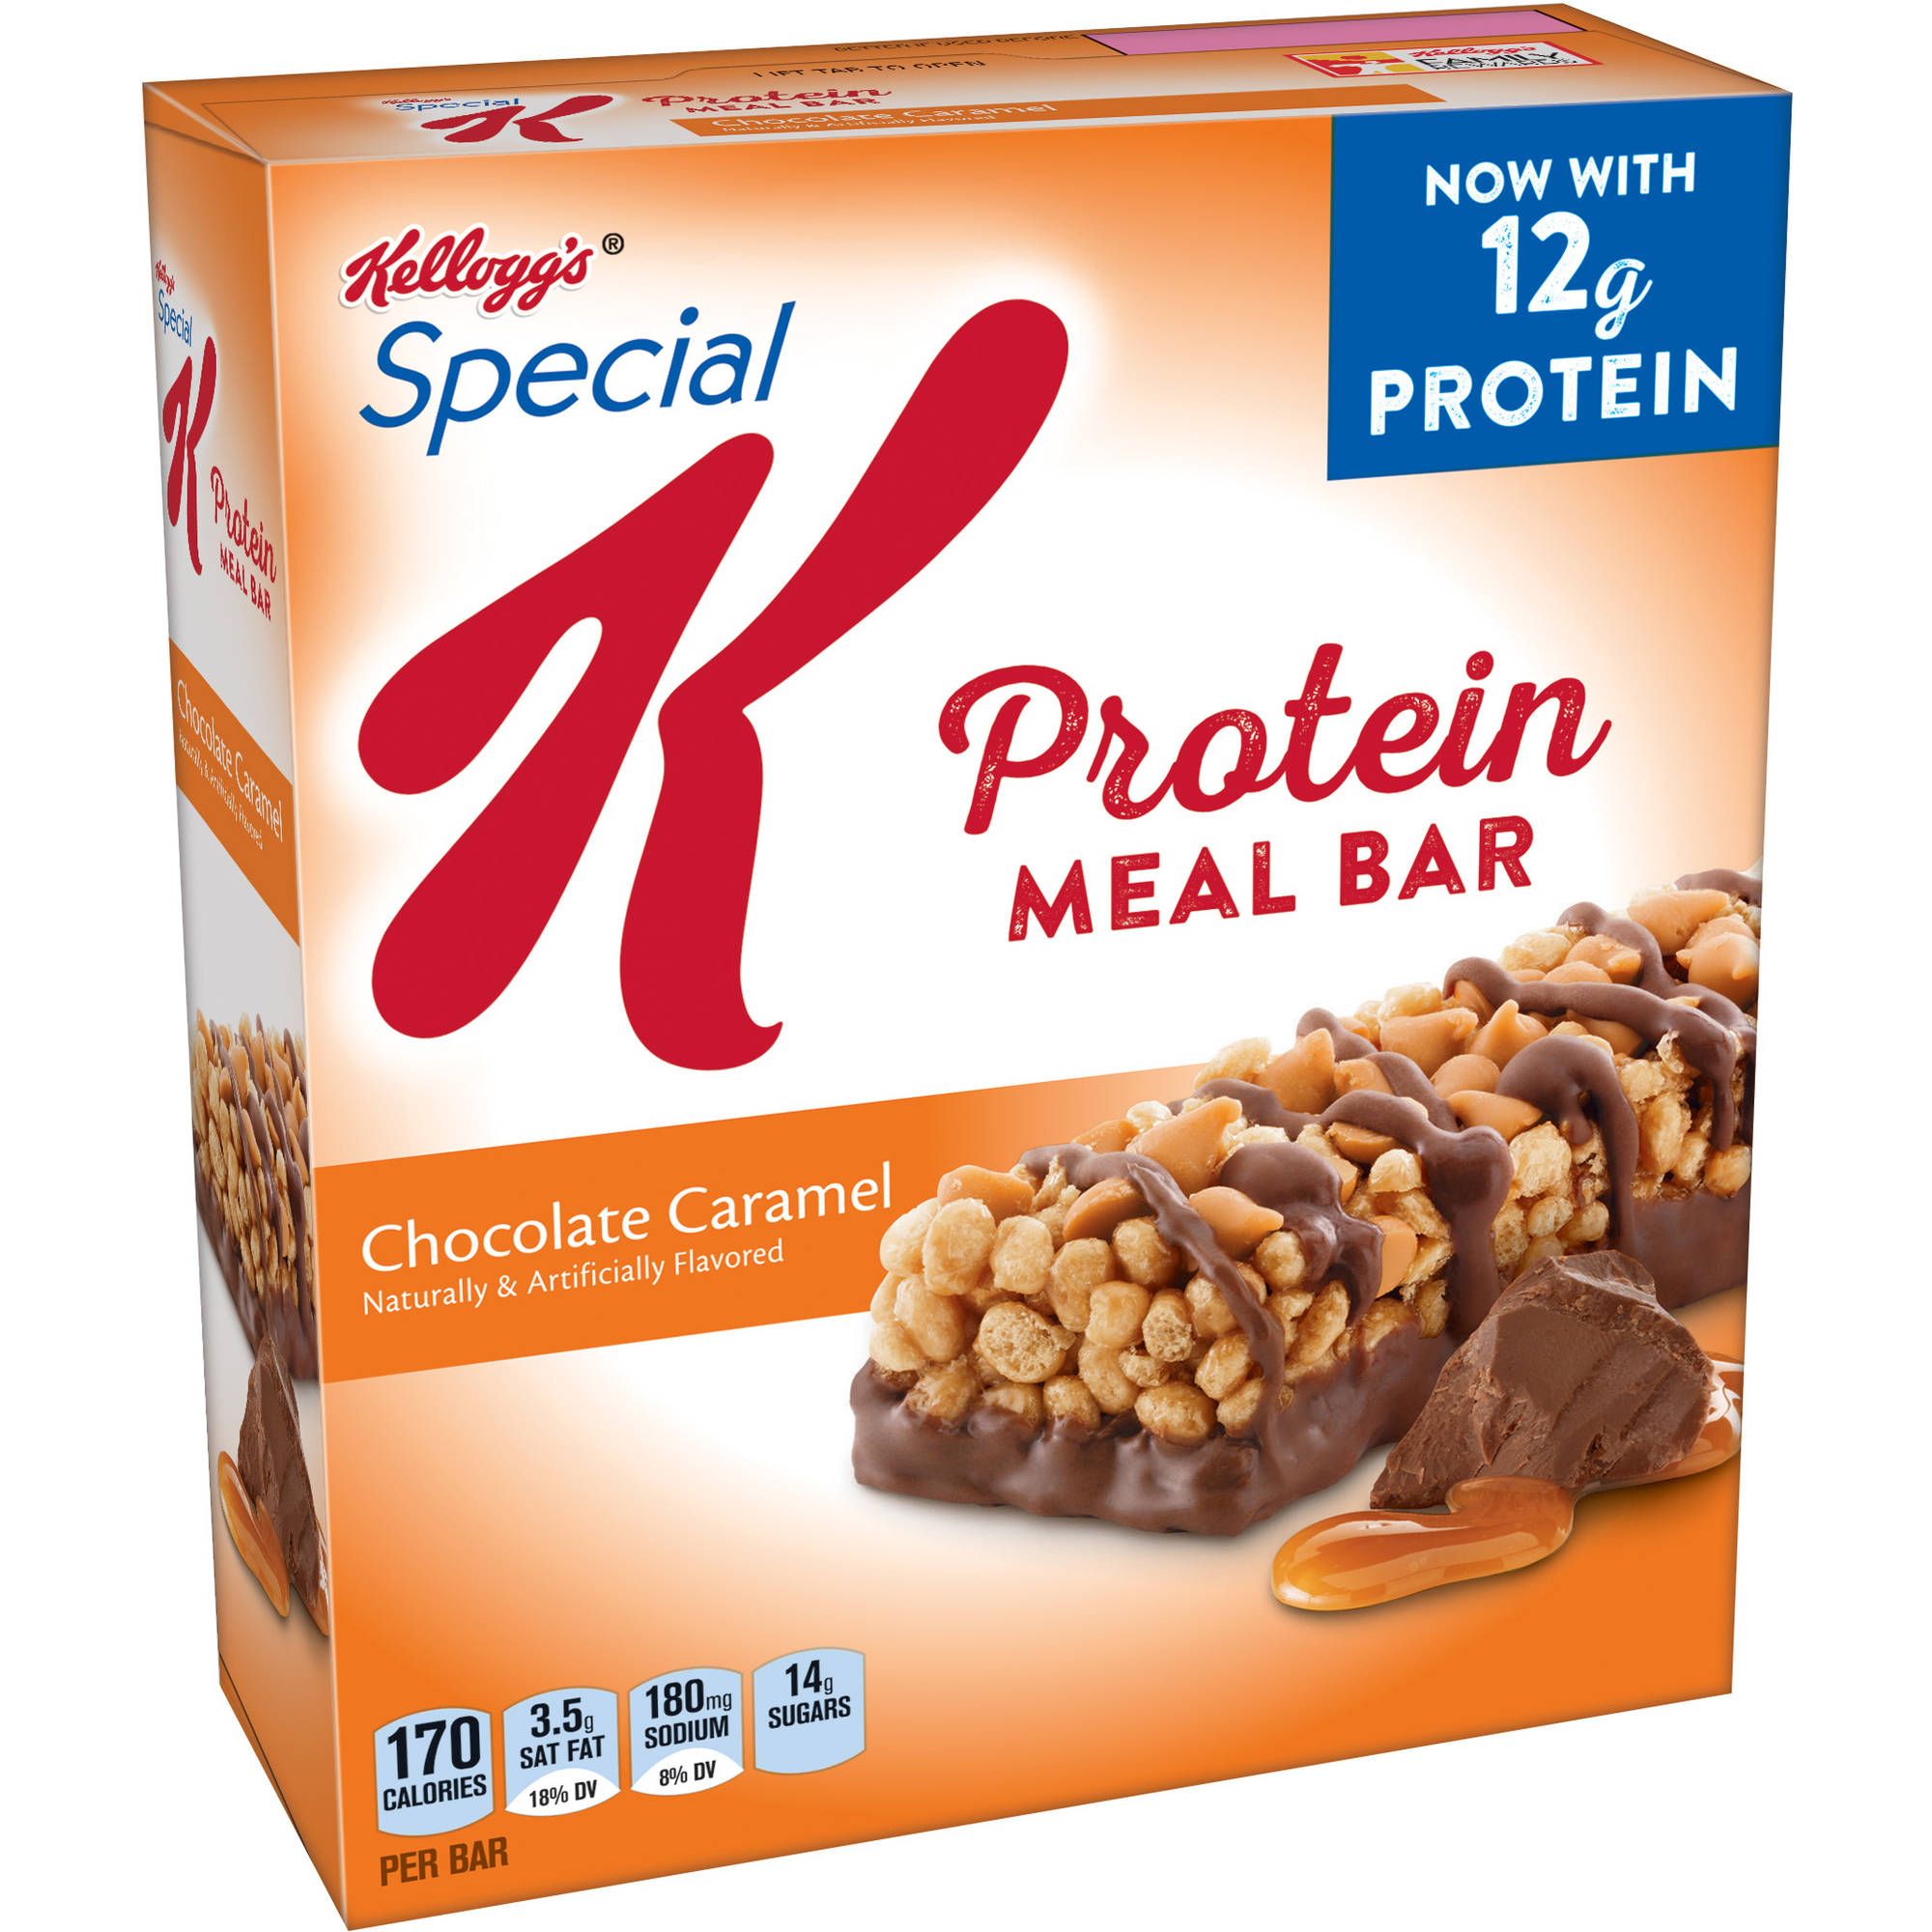 Kellogg's Special K Protein Meal Bar, Chocolate Caramel, 12g Protein, 6 Ct